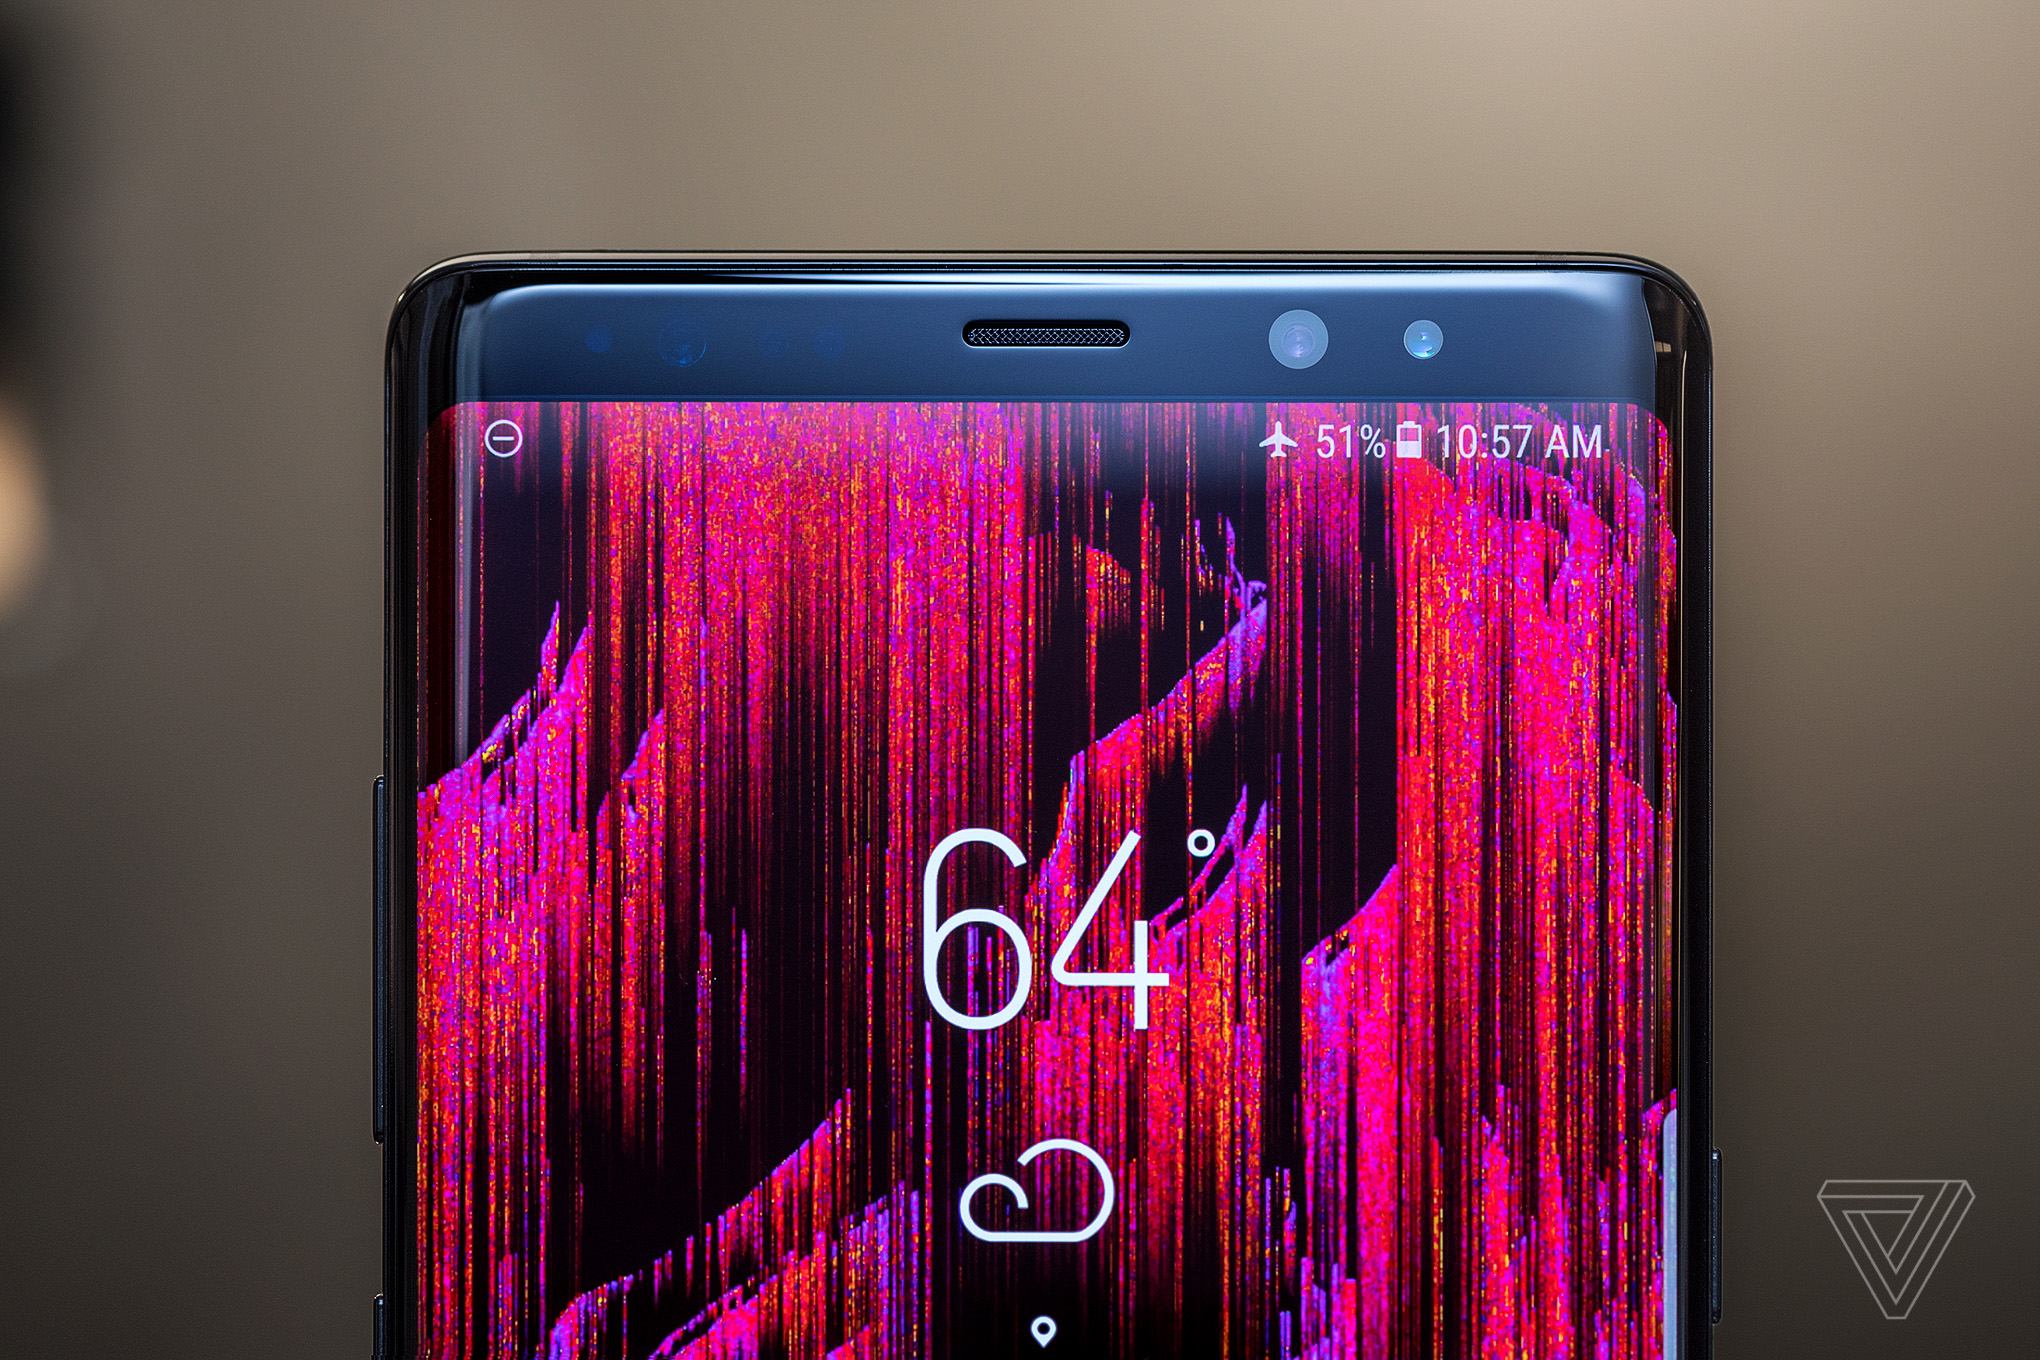 Samsung Galaxy Note 8 Review One For The Fans The Verge